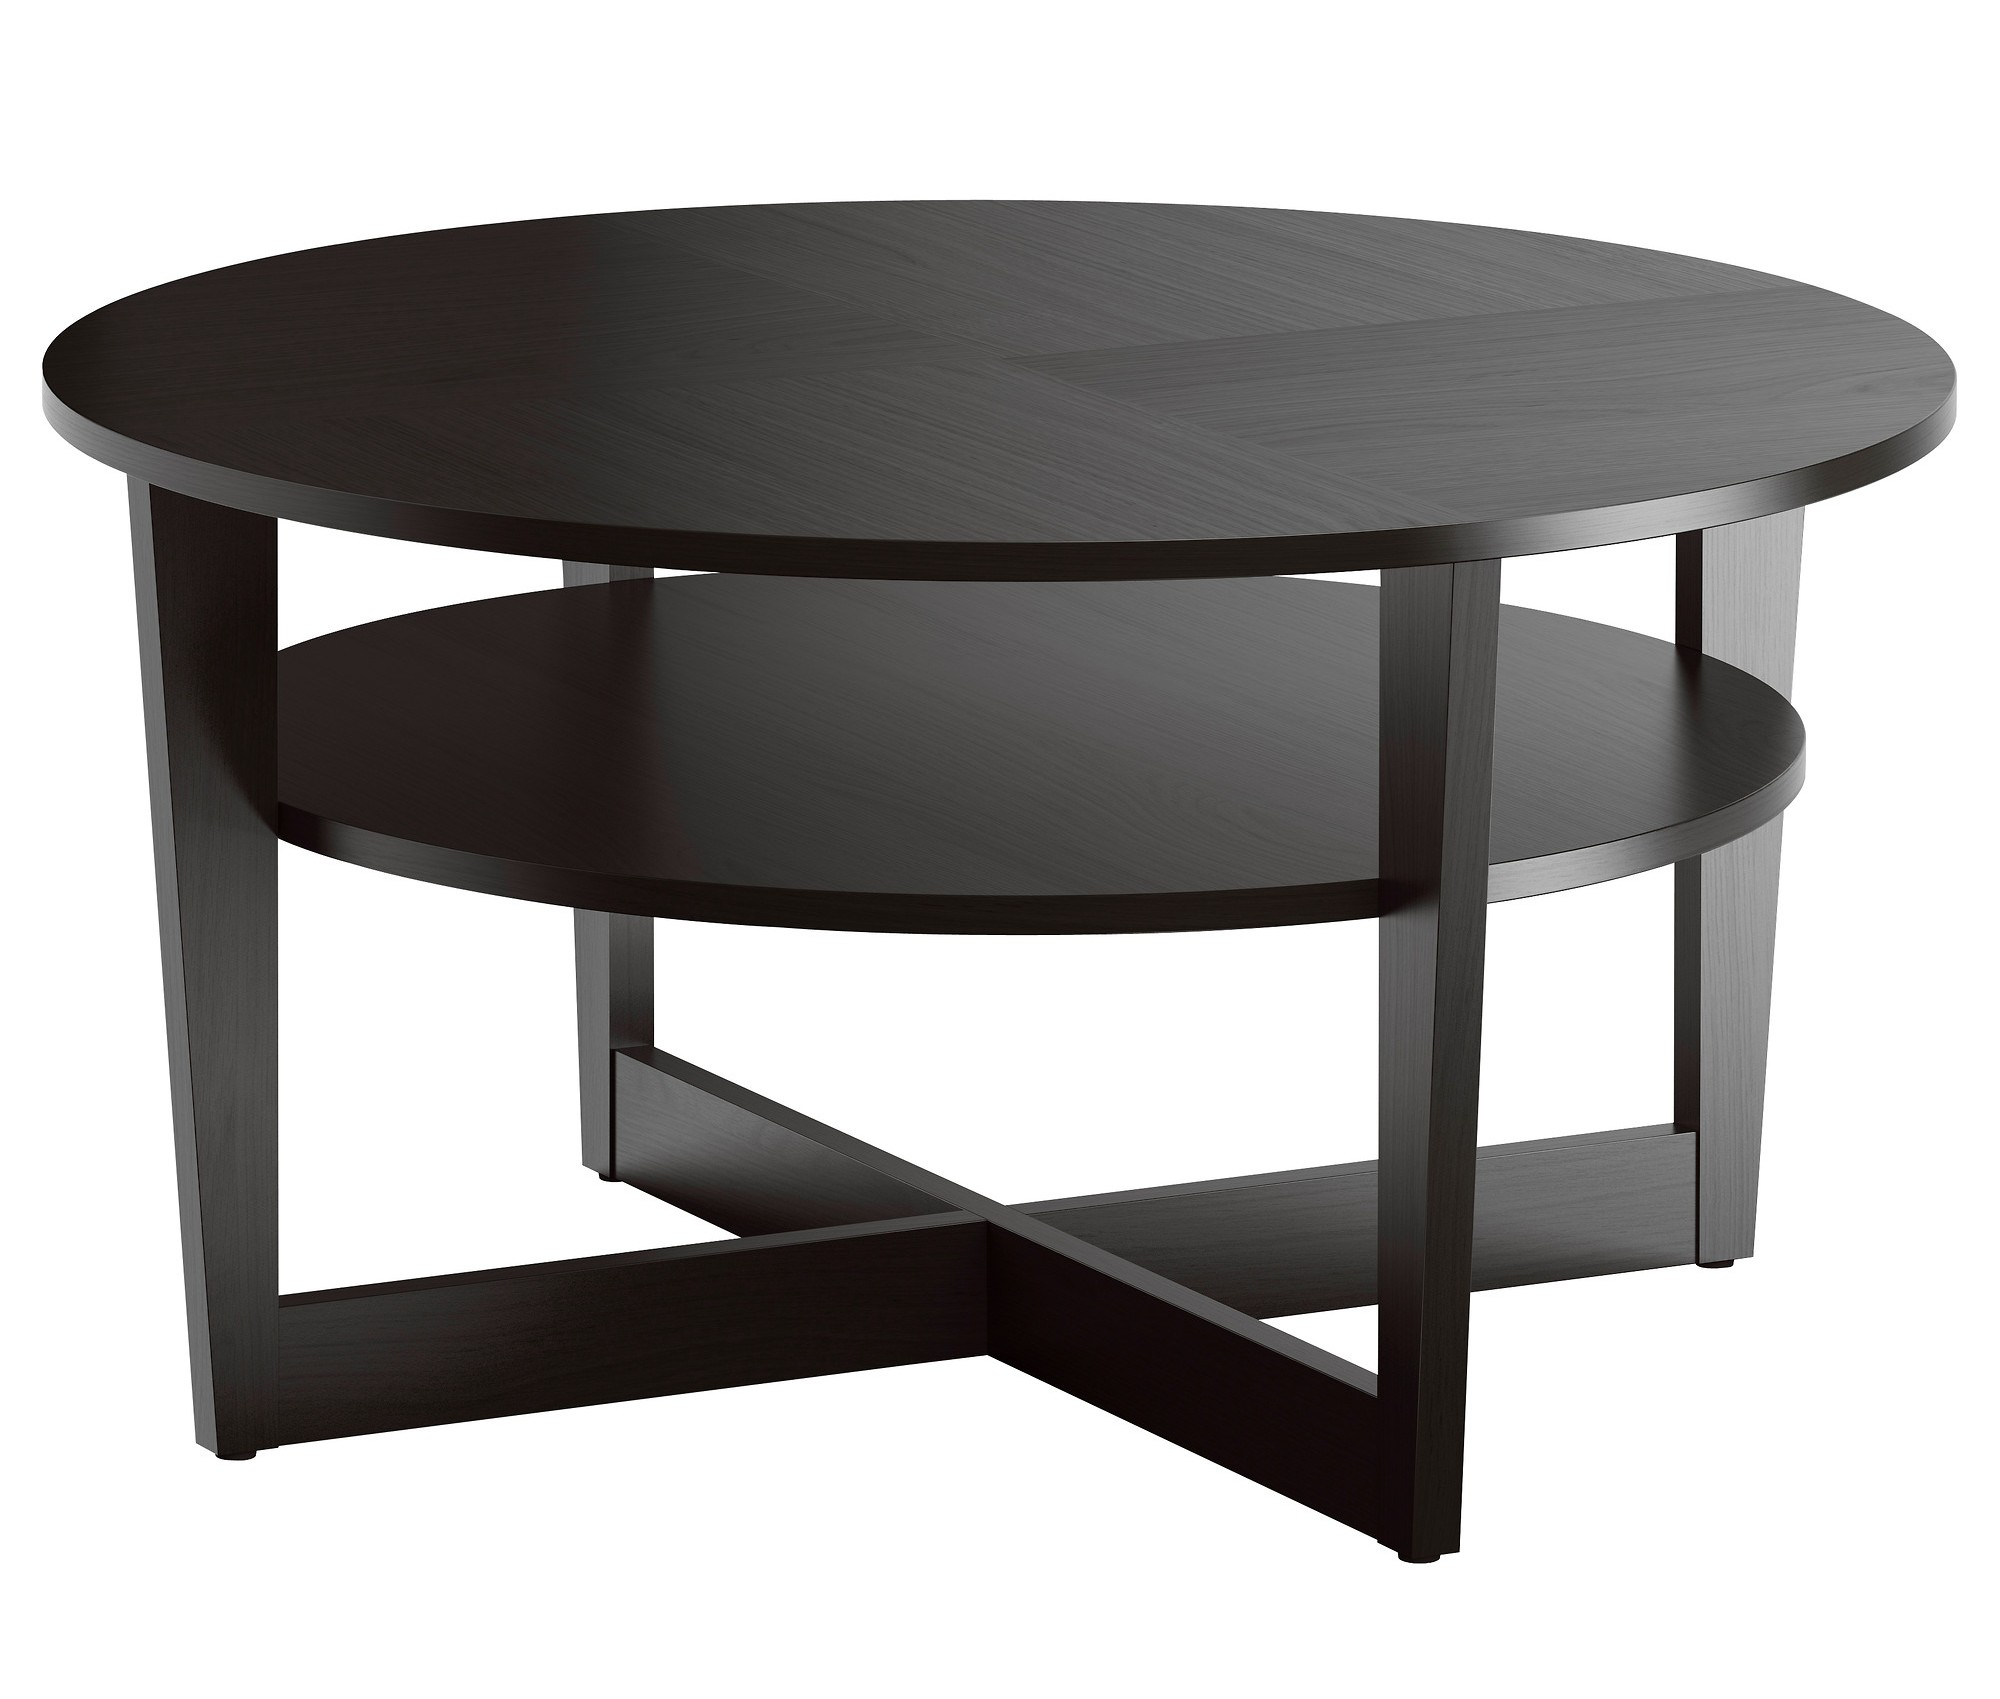 Round Coffee Table Standard Size: Average Coffee Table Size